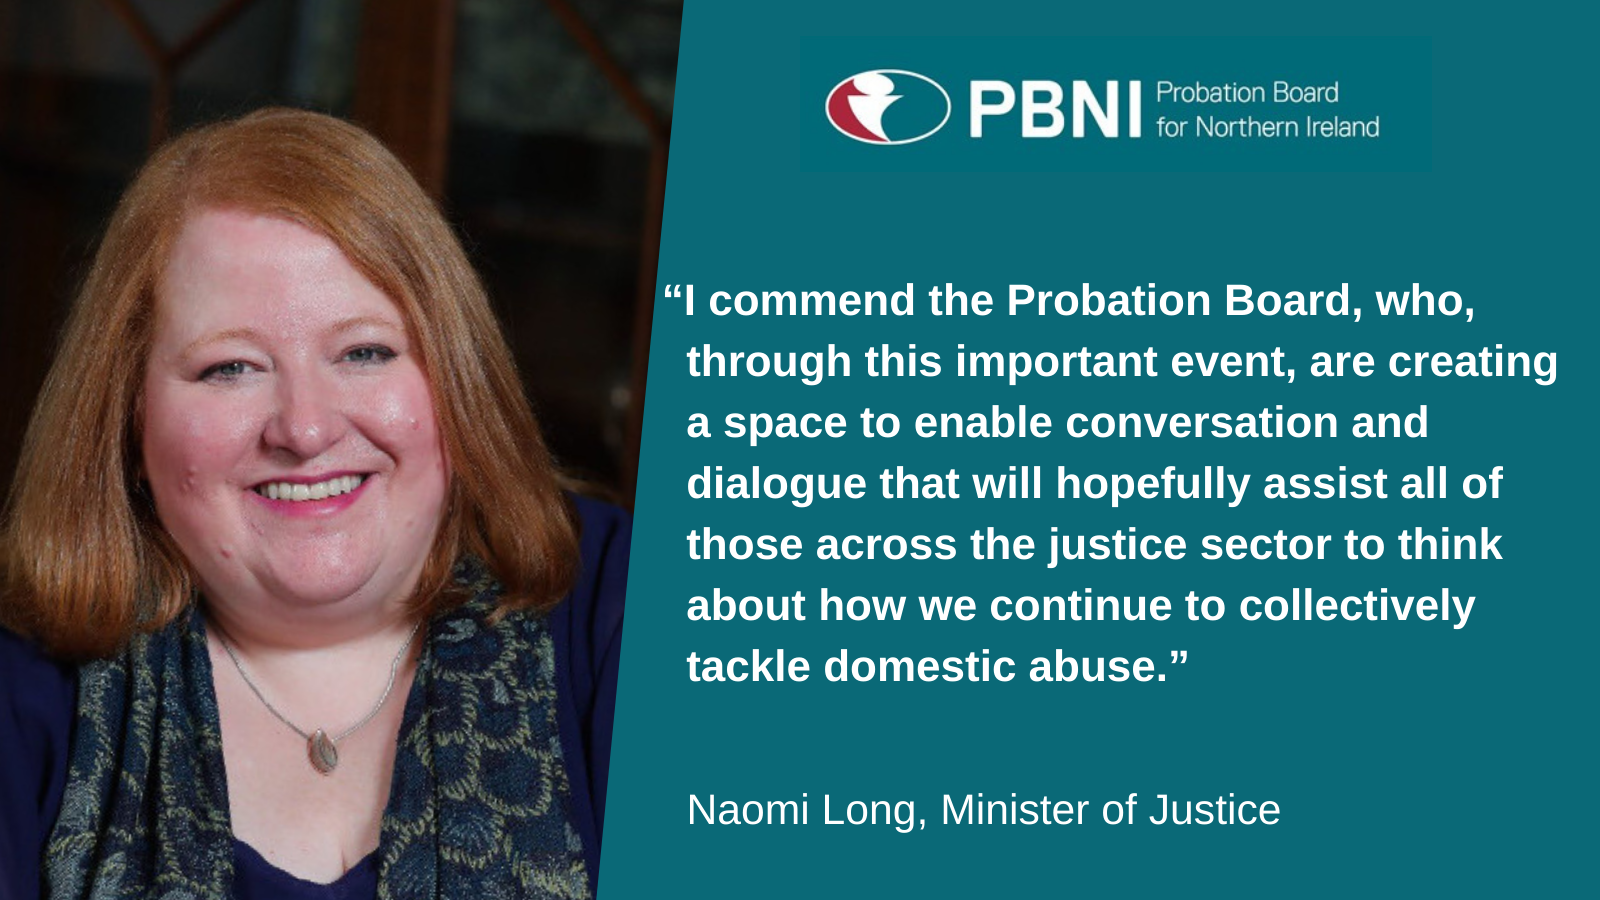 Naomi Long, Minister of Justice, said